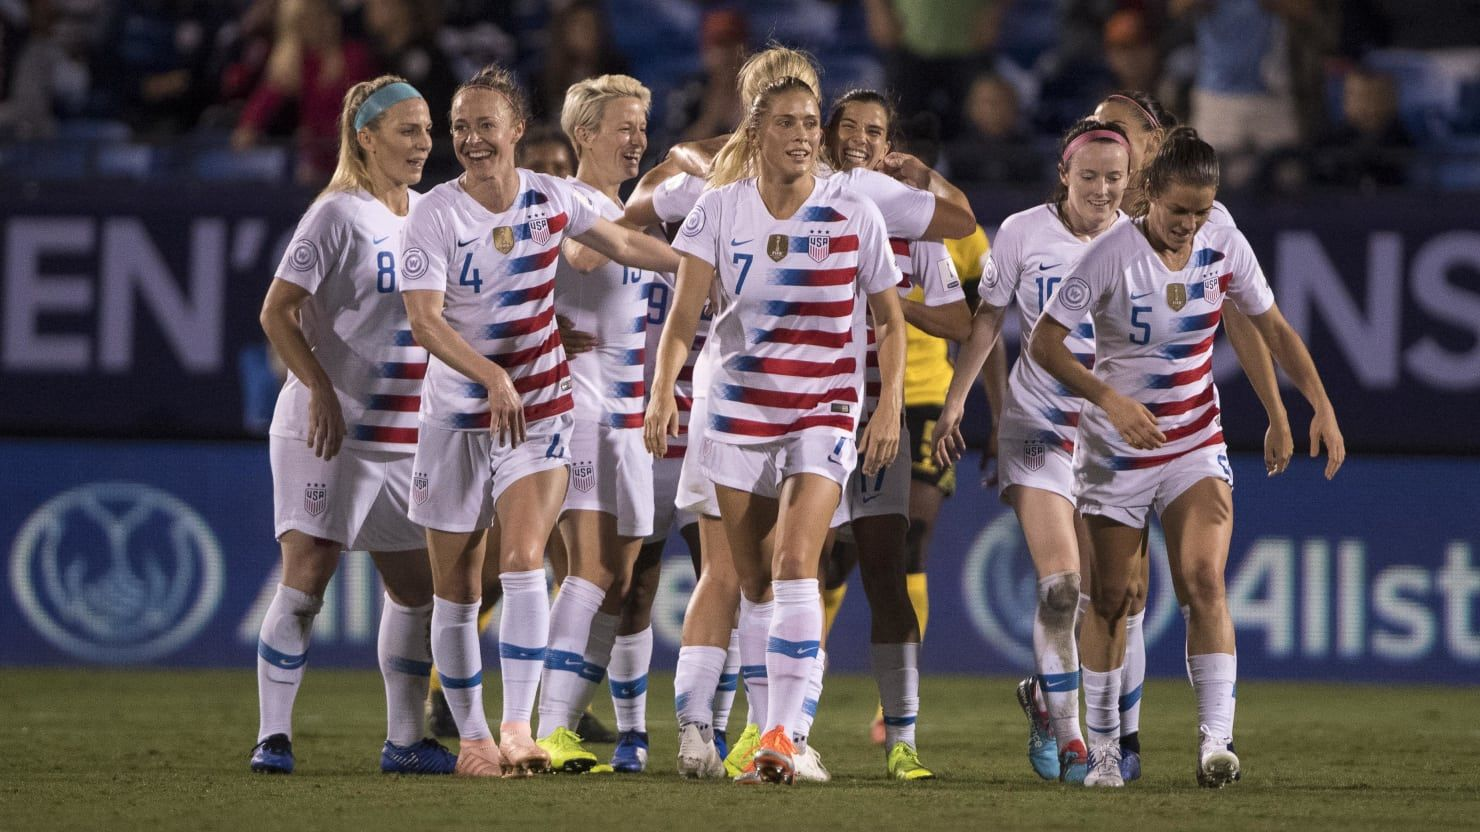 U S Women S Soccer Team Clinches 2019 World Cup Berth Women S Soccer Team Womens Soccer Soccer Team